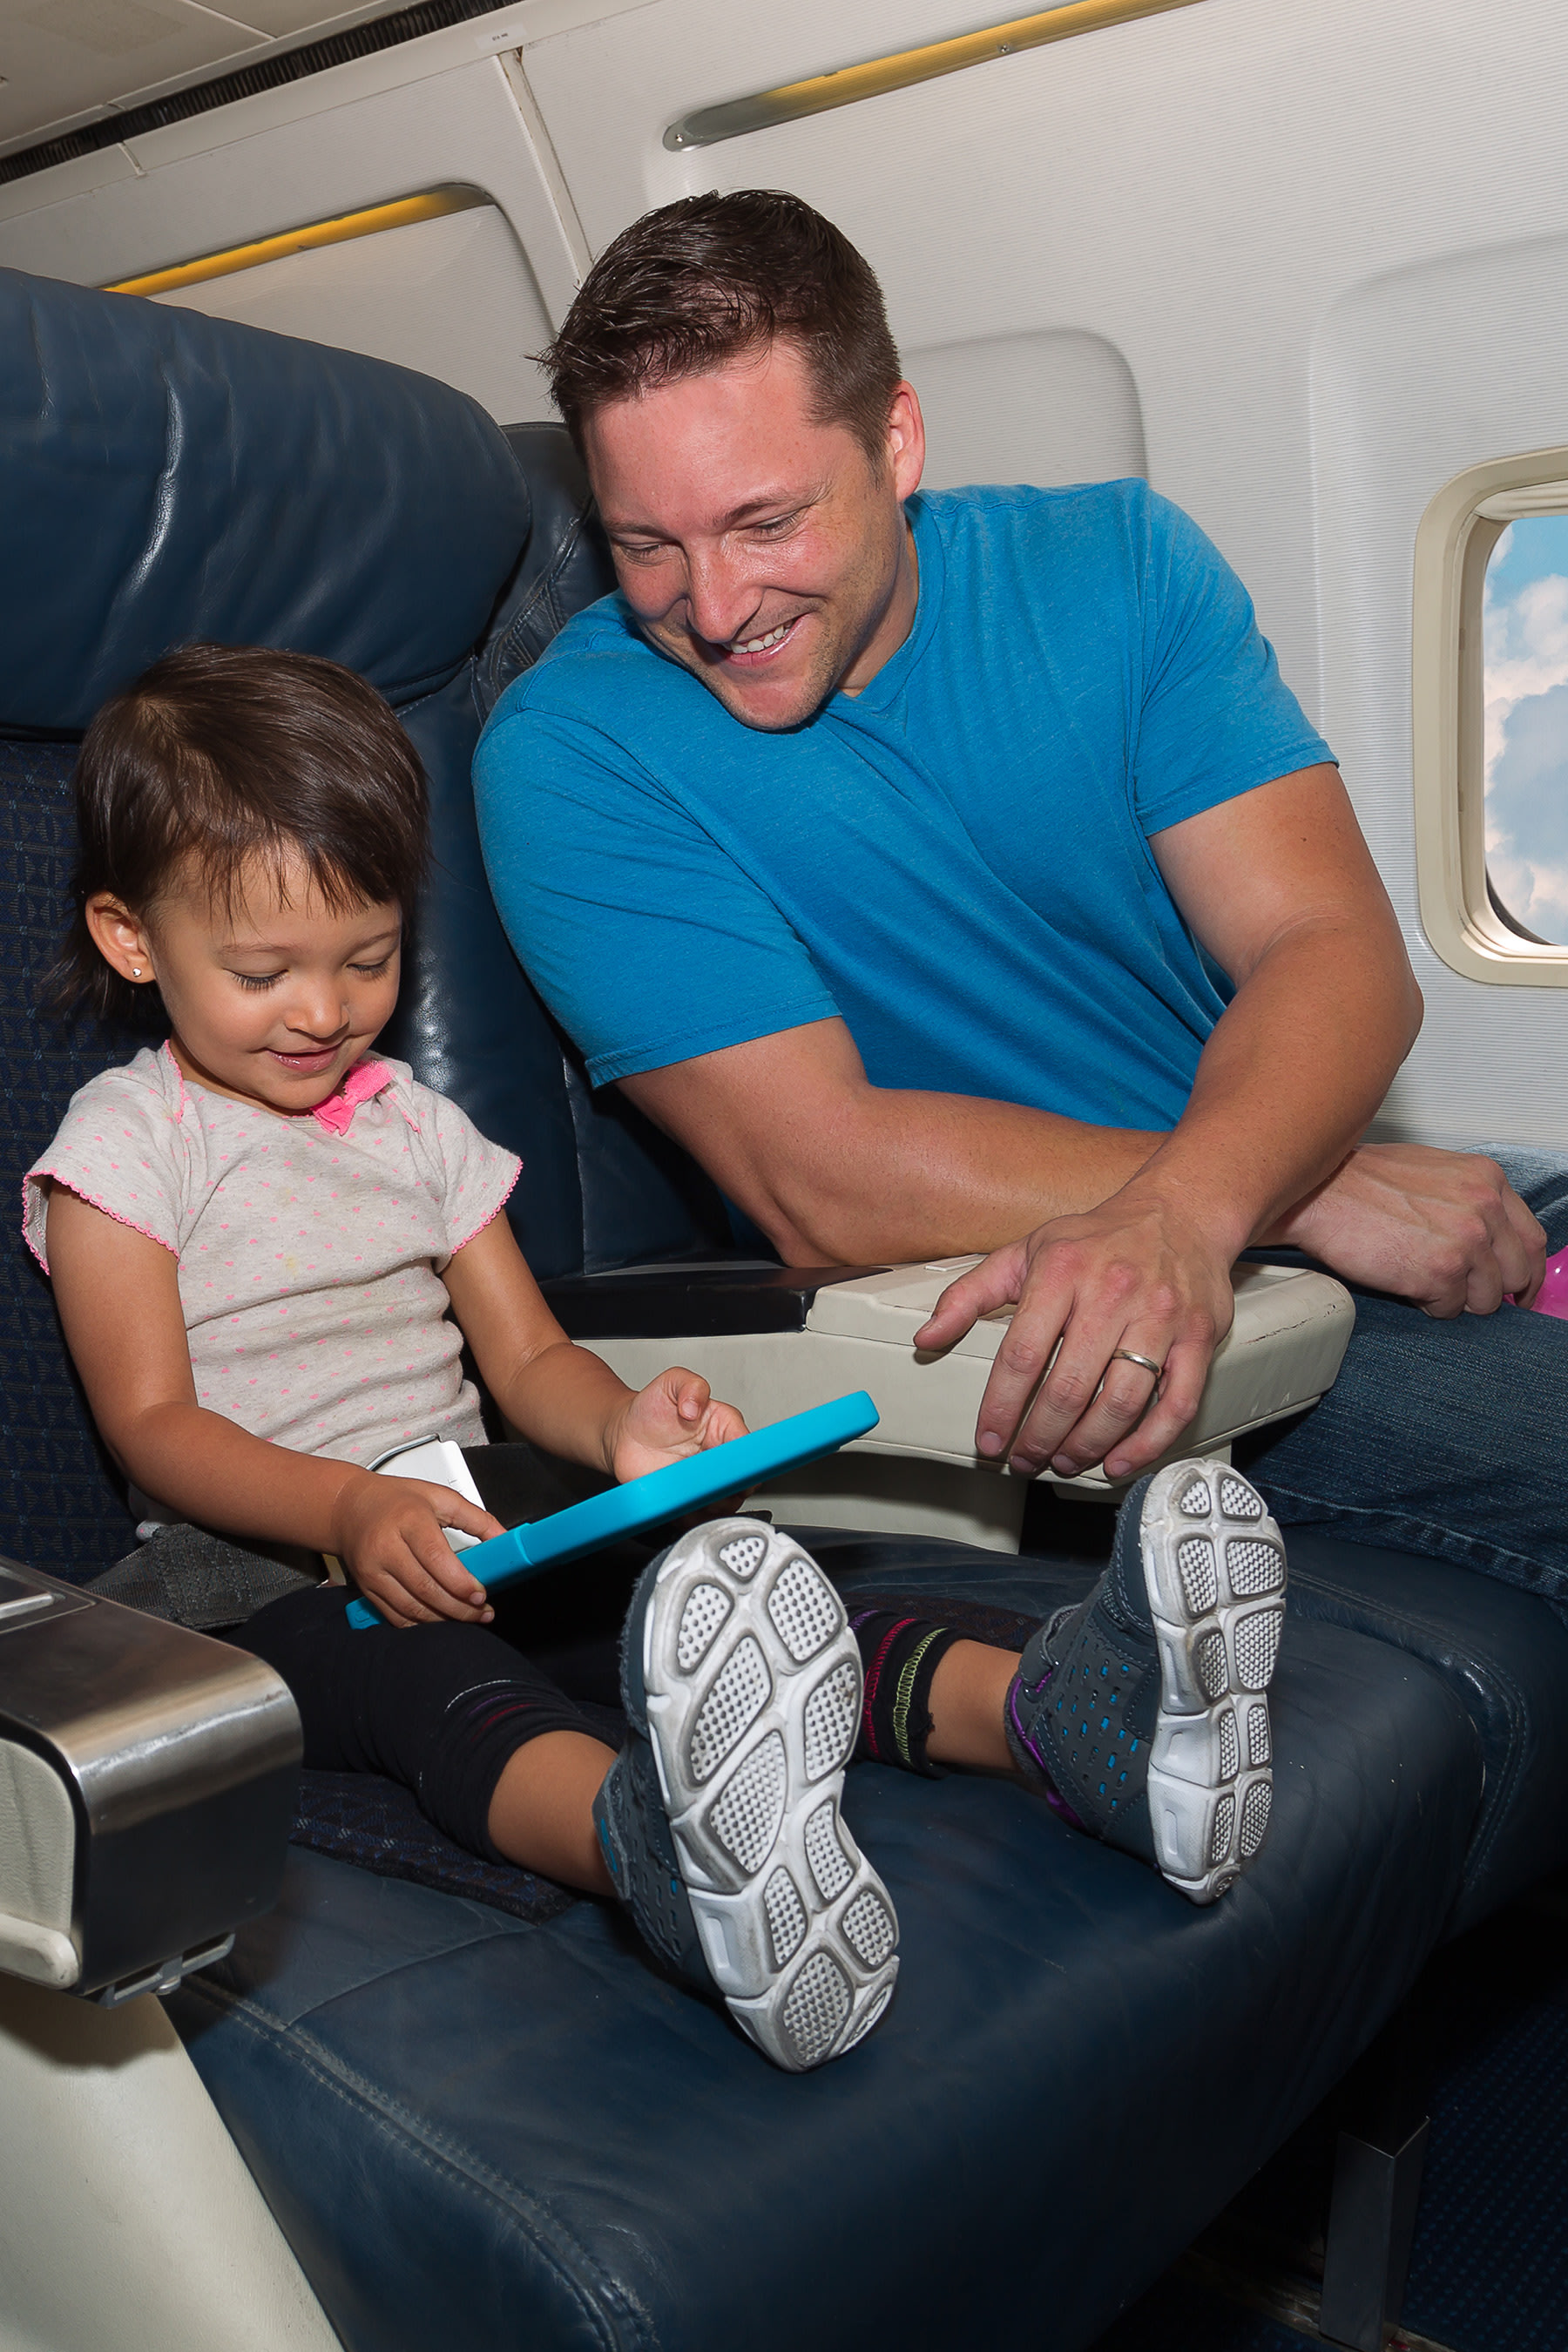 Little girl playing on tablet with father in cabin